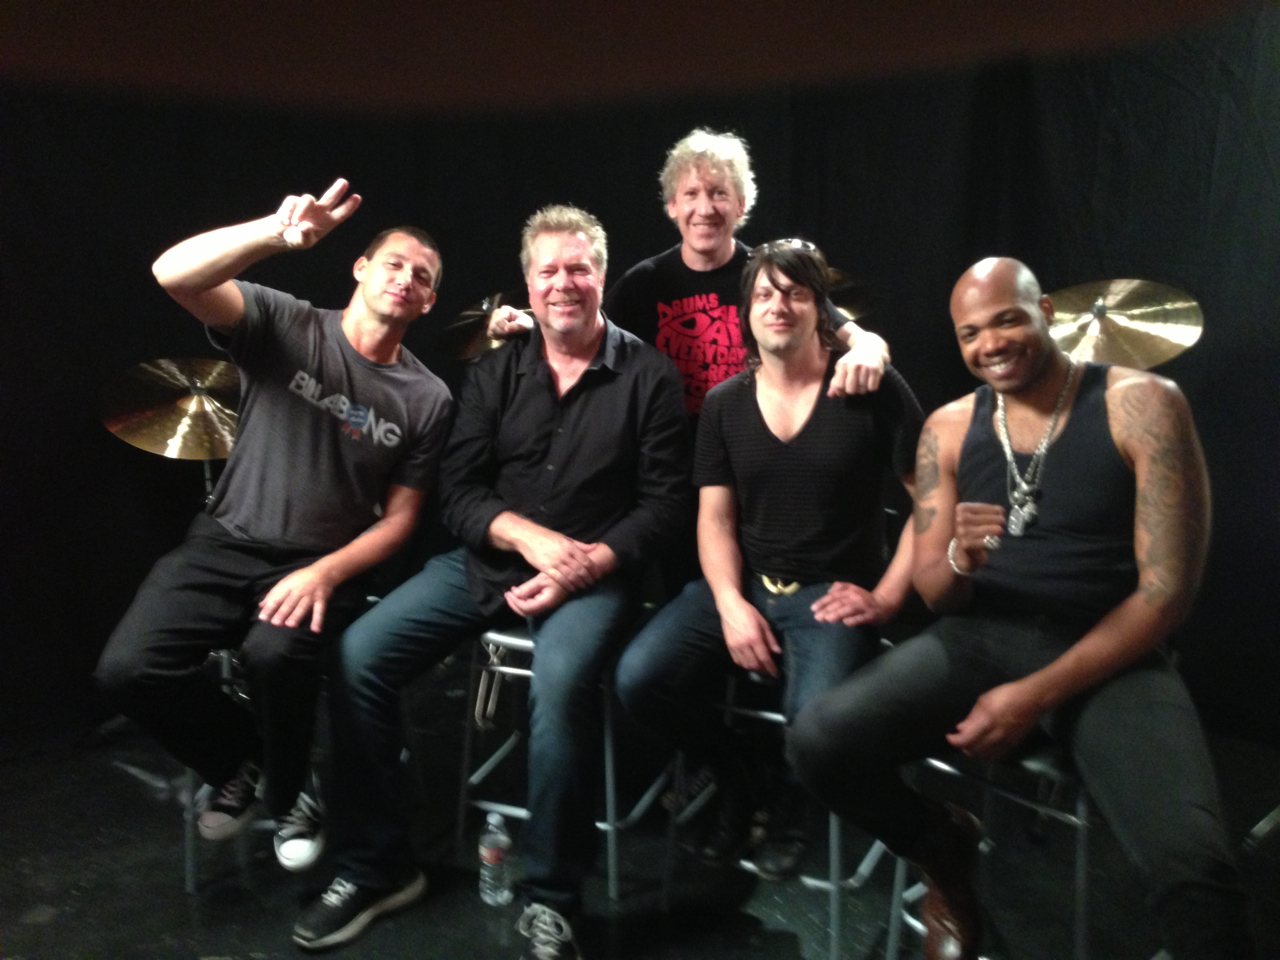 The Paiste Cymbals Crew Invades The Studio!